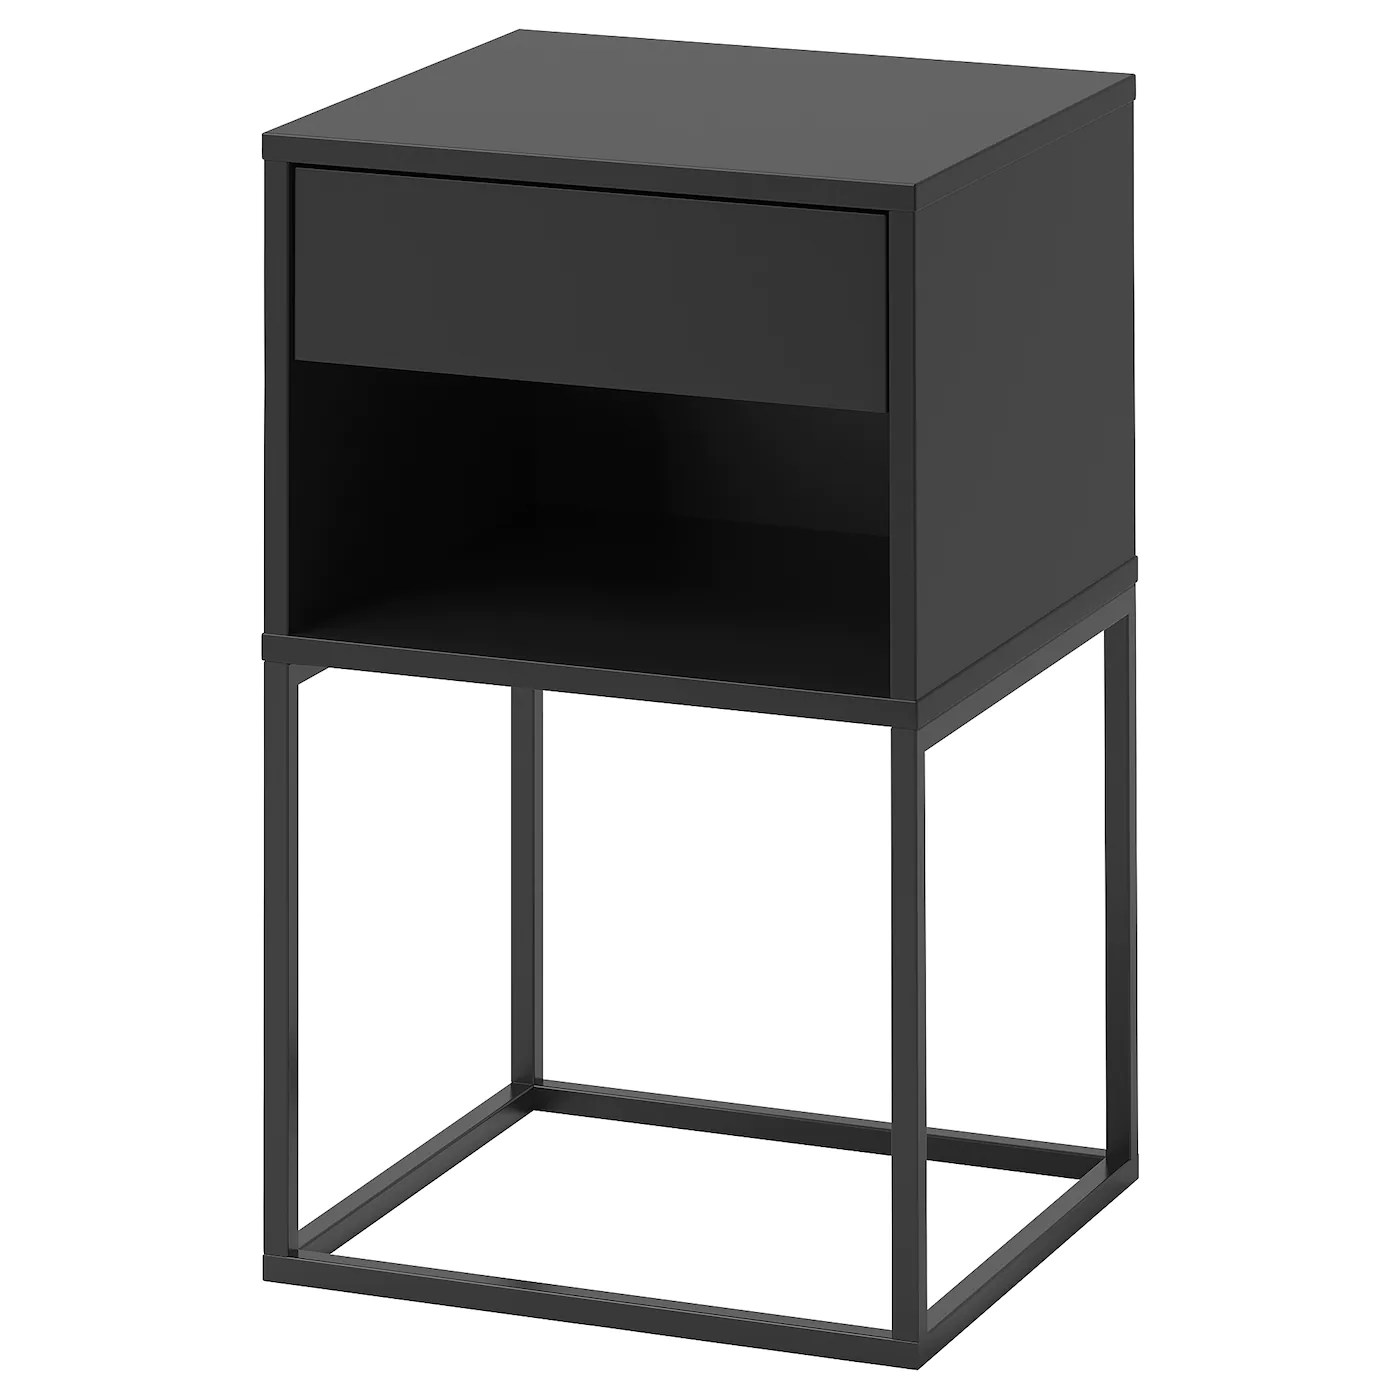 Table De Chevet 30 Cm Tables De Chevet Tables De Nuit Design Pas Cher Ikea